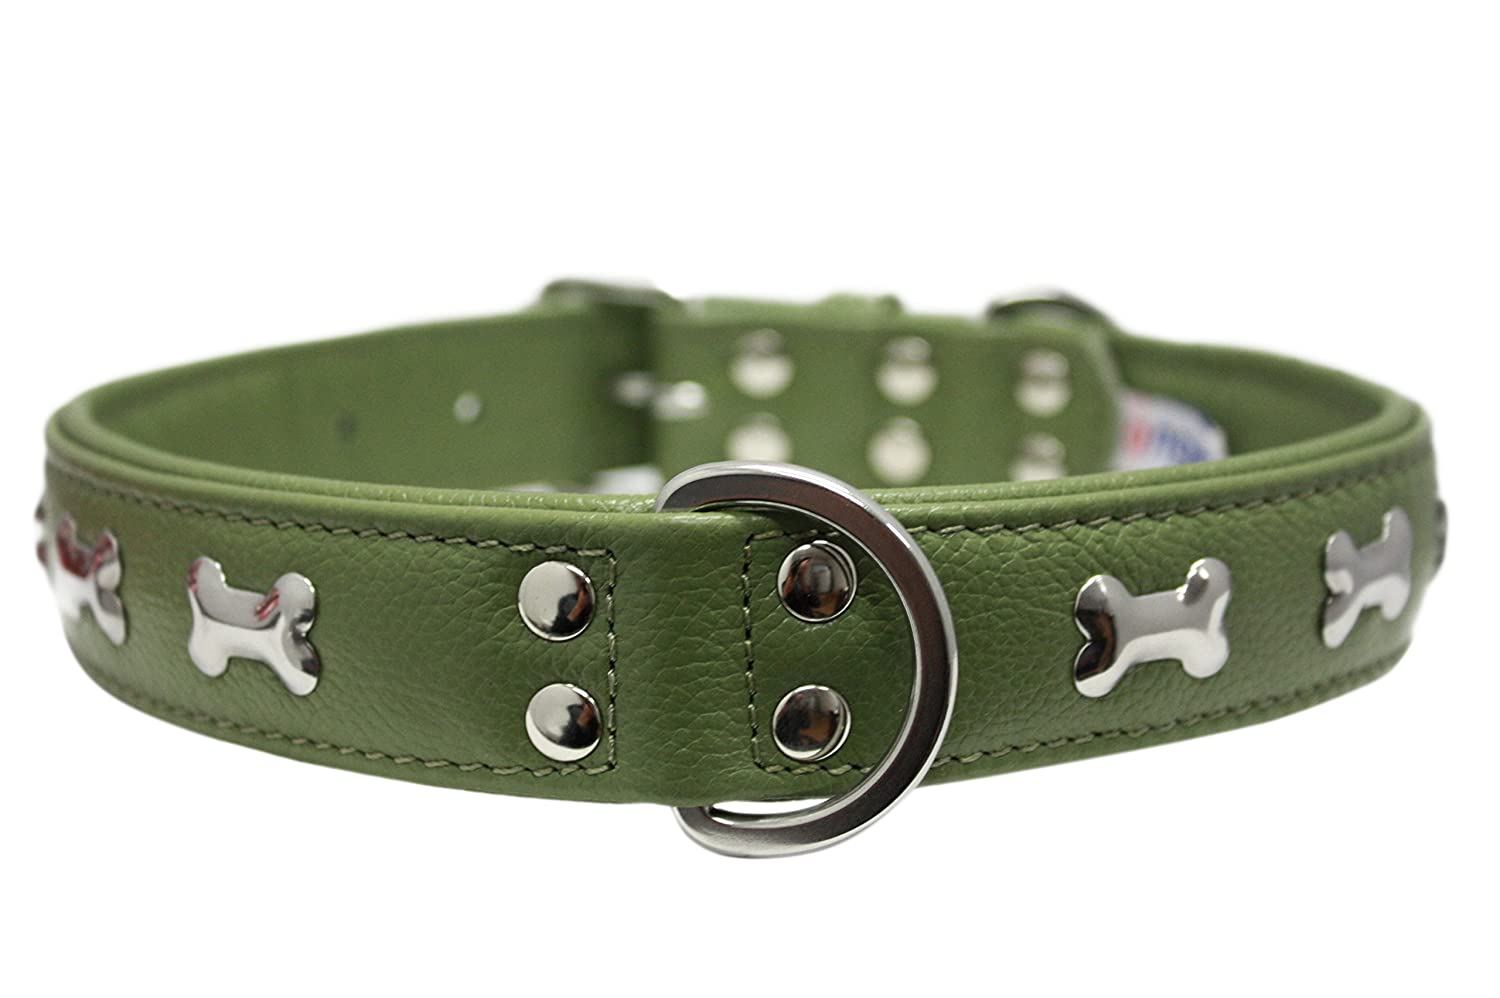 Leather Bones Dog Collar Padded Double-Ply Riveted Settings 26 x 1.25 Green Leather (redterdam Bones) Neck Size  20-24